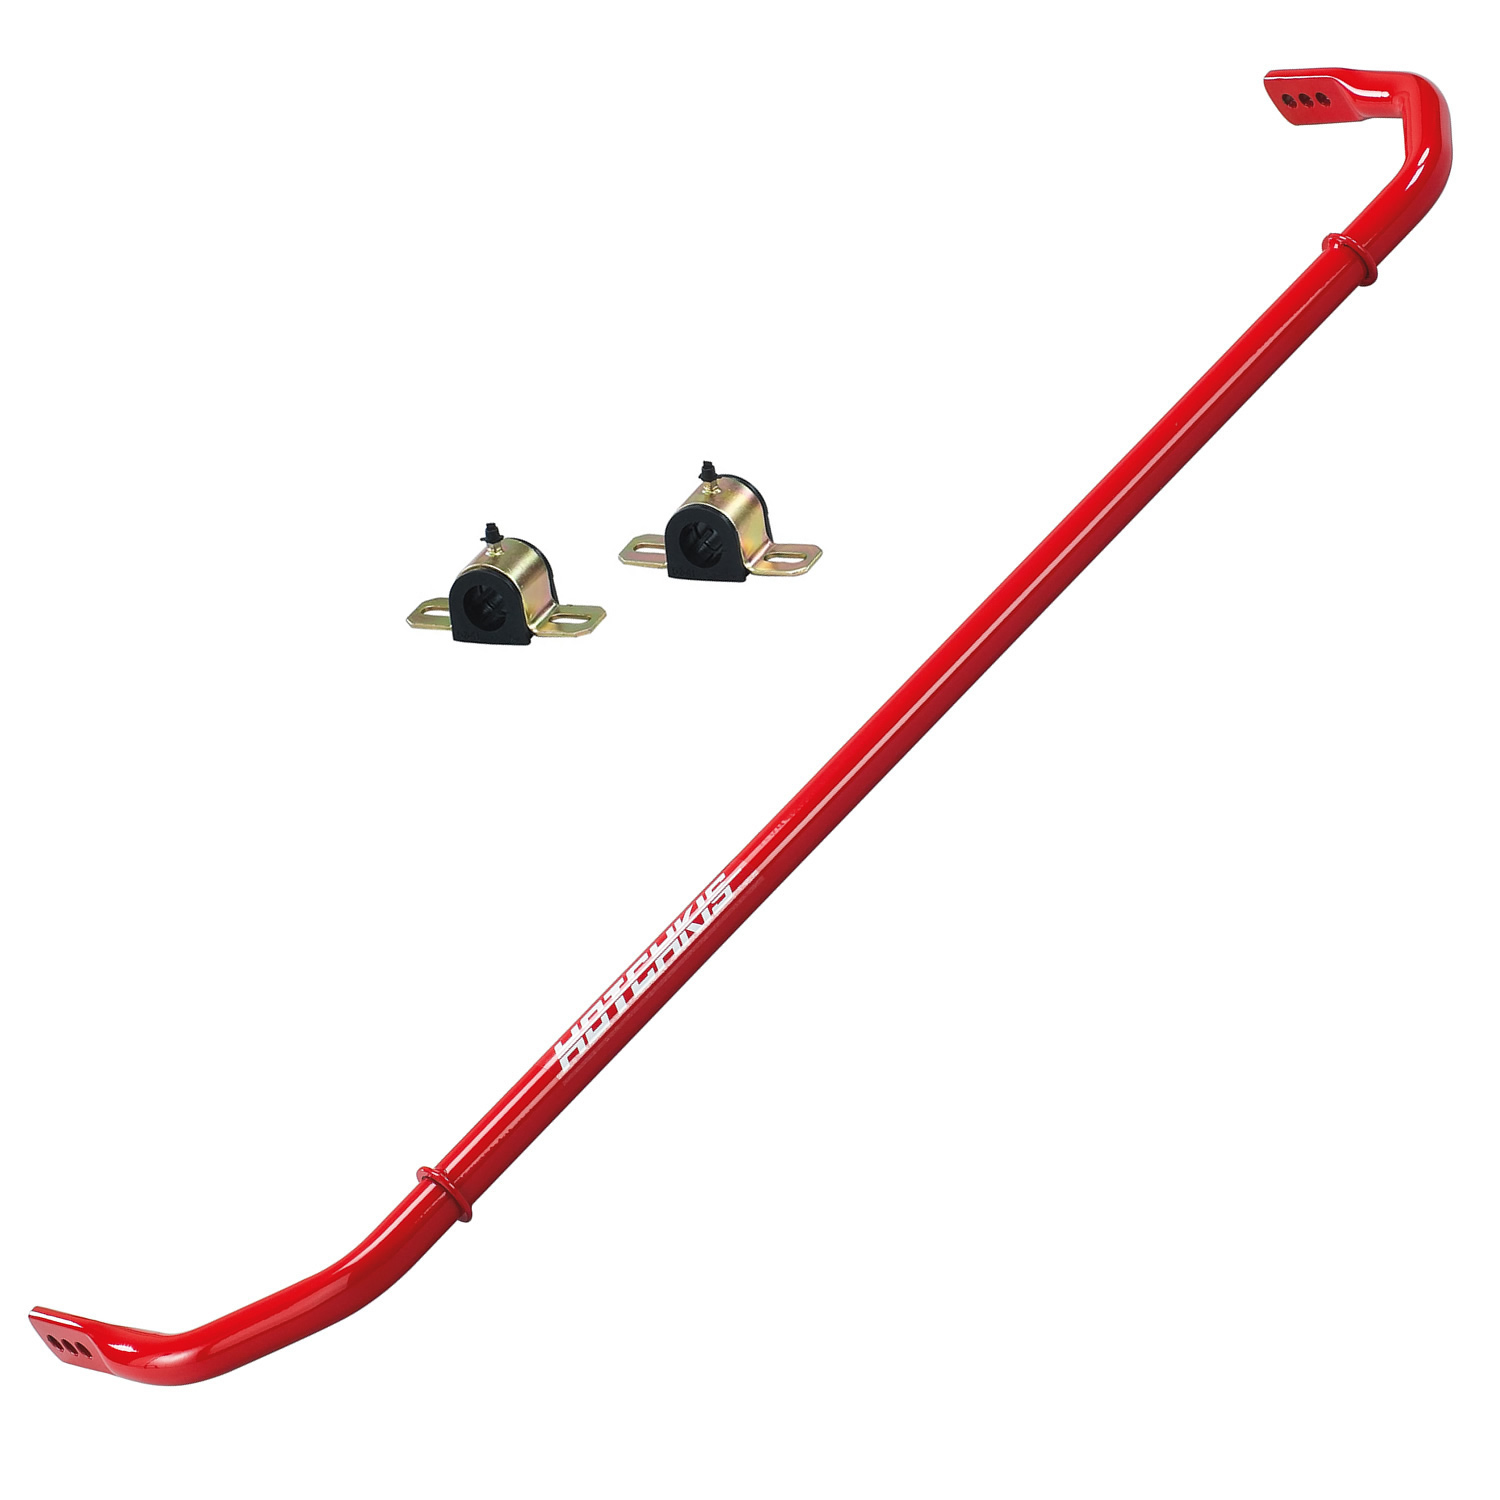 2004-2007 Mazda RX-8 Sport Front Sway Bar from Hotchkis Sport Suspension